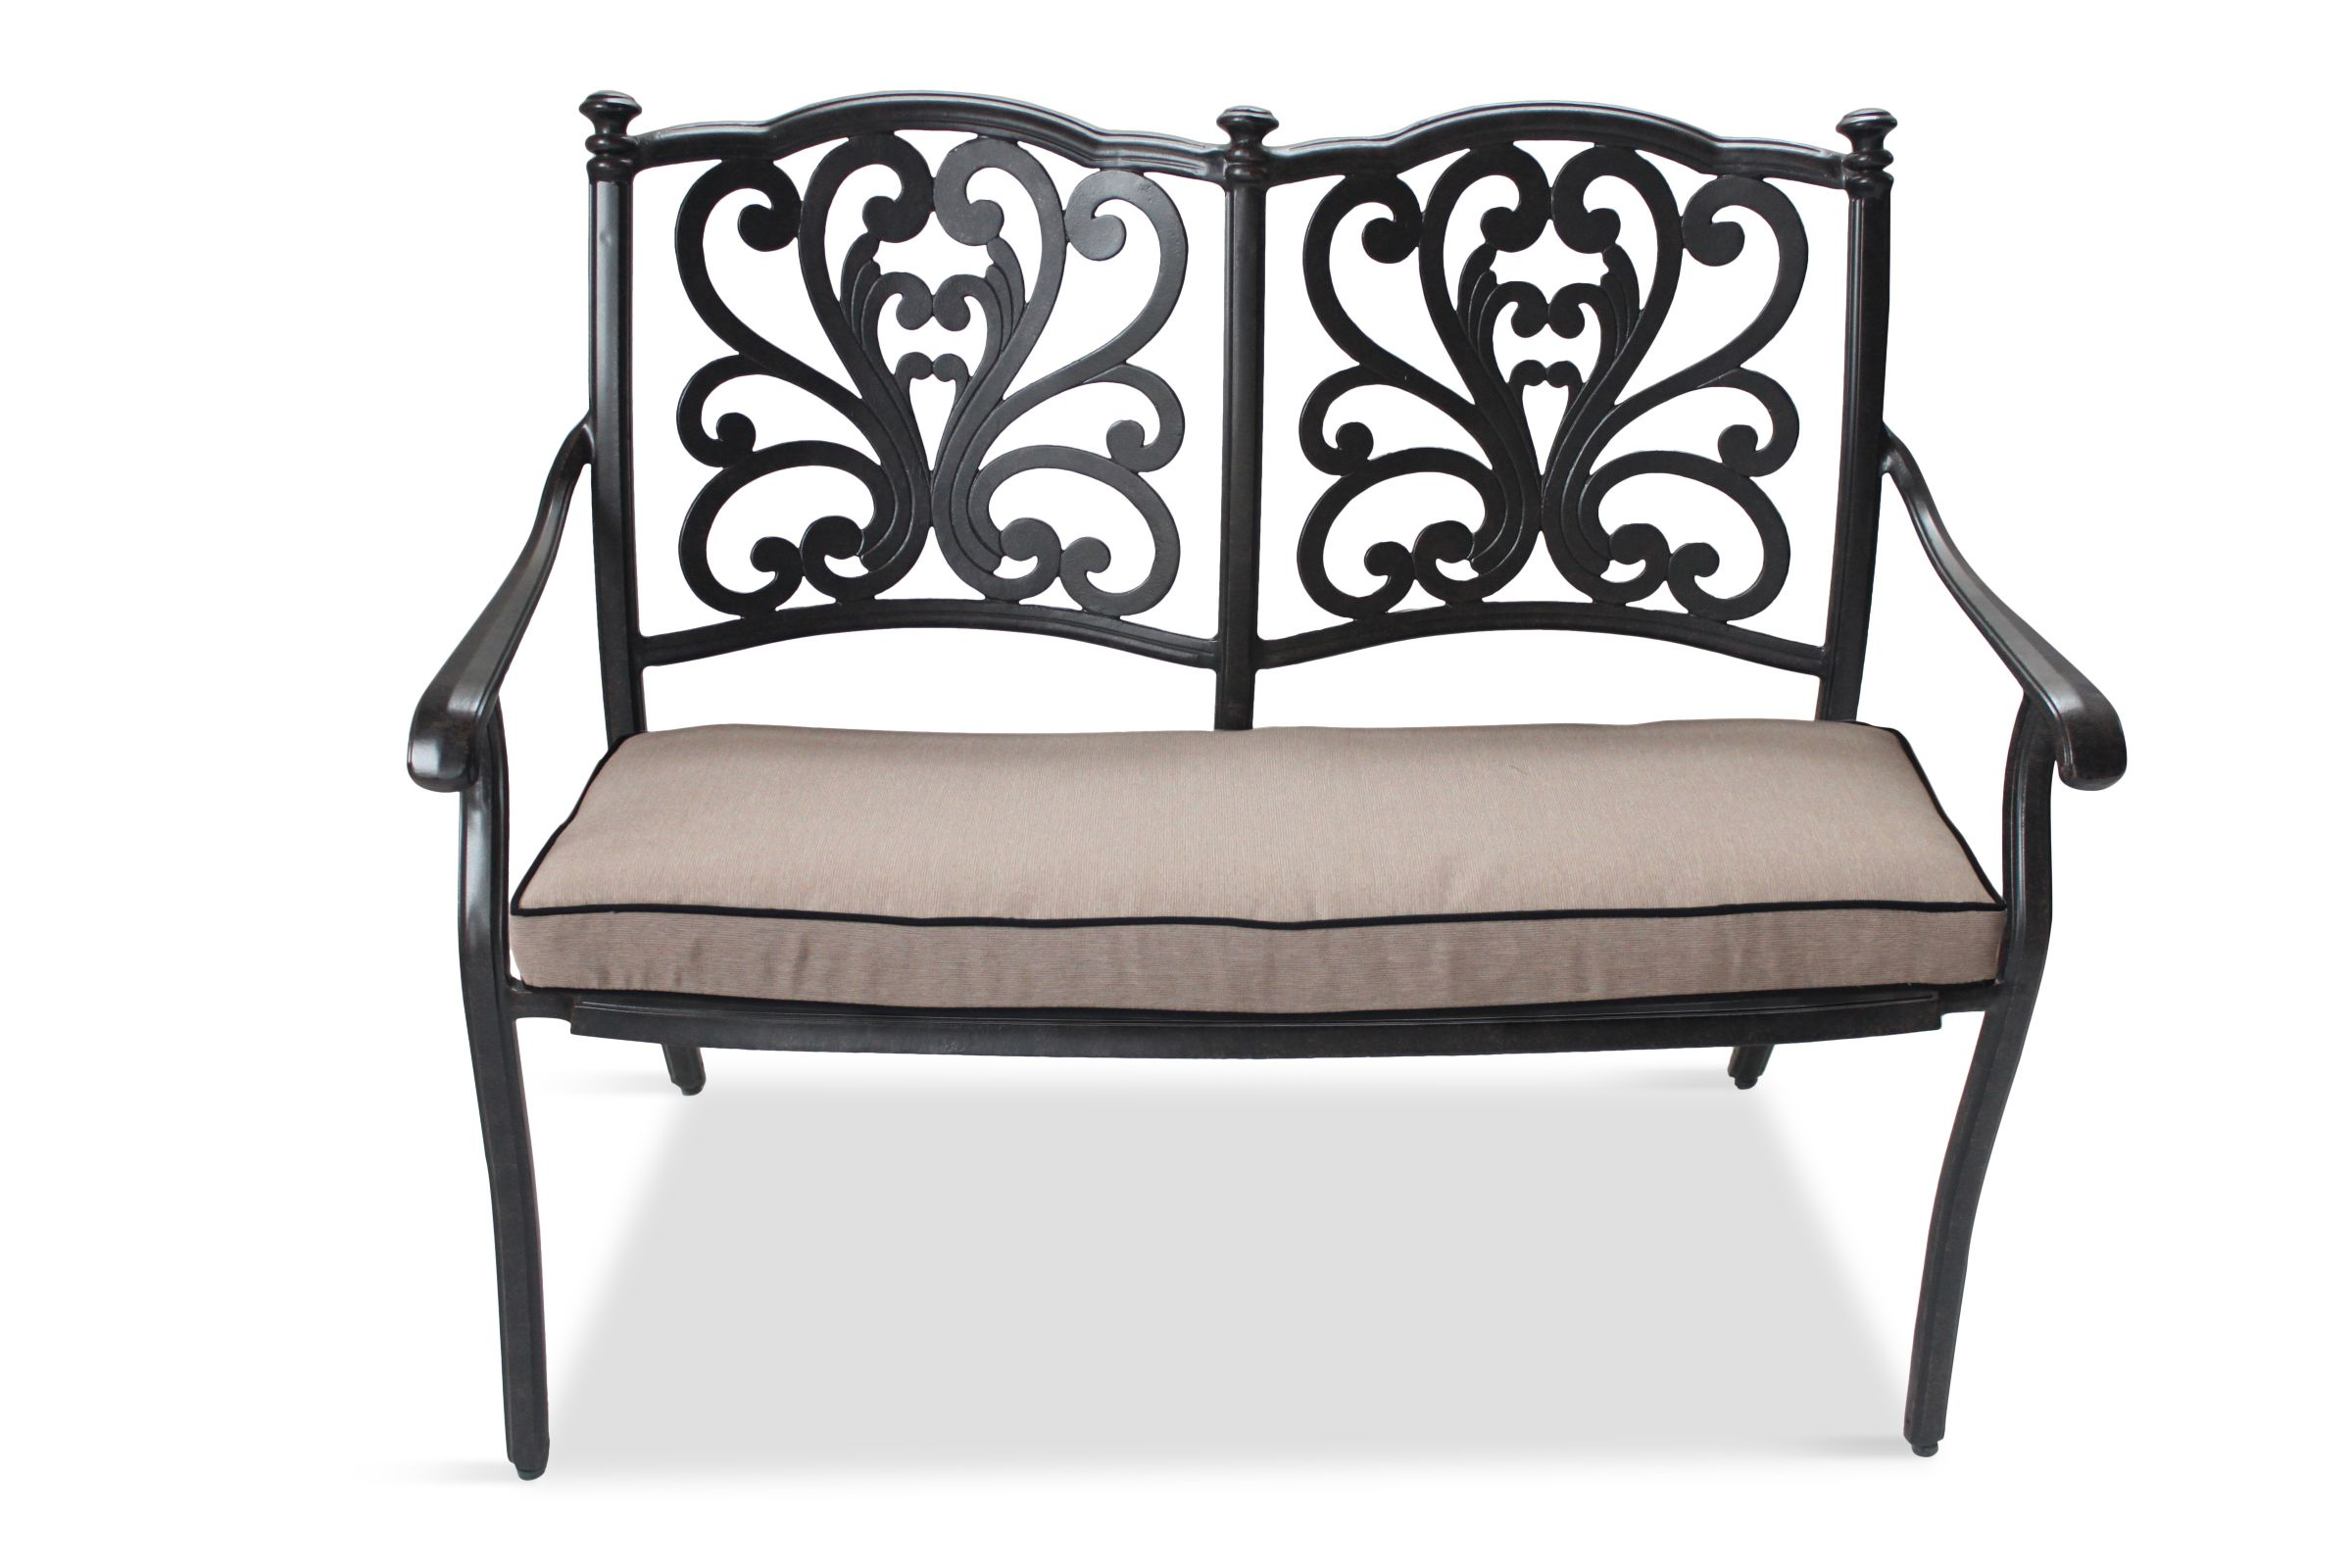 LG Outdoor LG Outdoor Devon Bench and Cushion, Bronze